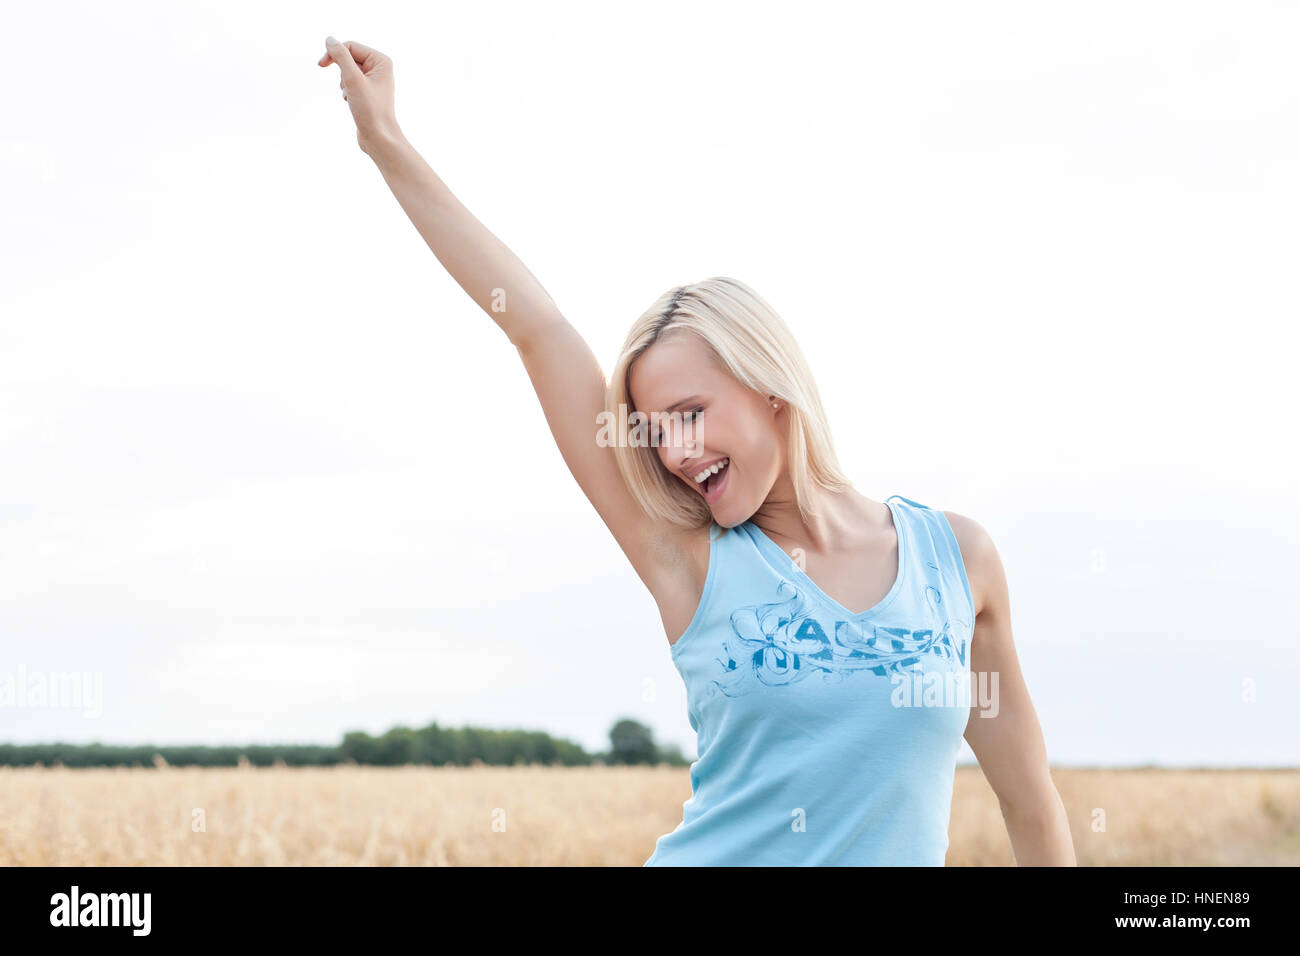 Cheerful young woman with arm raised standing against clear sky Stock Photo